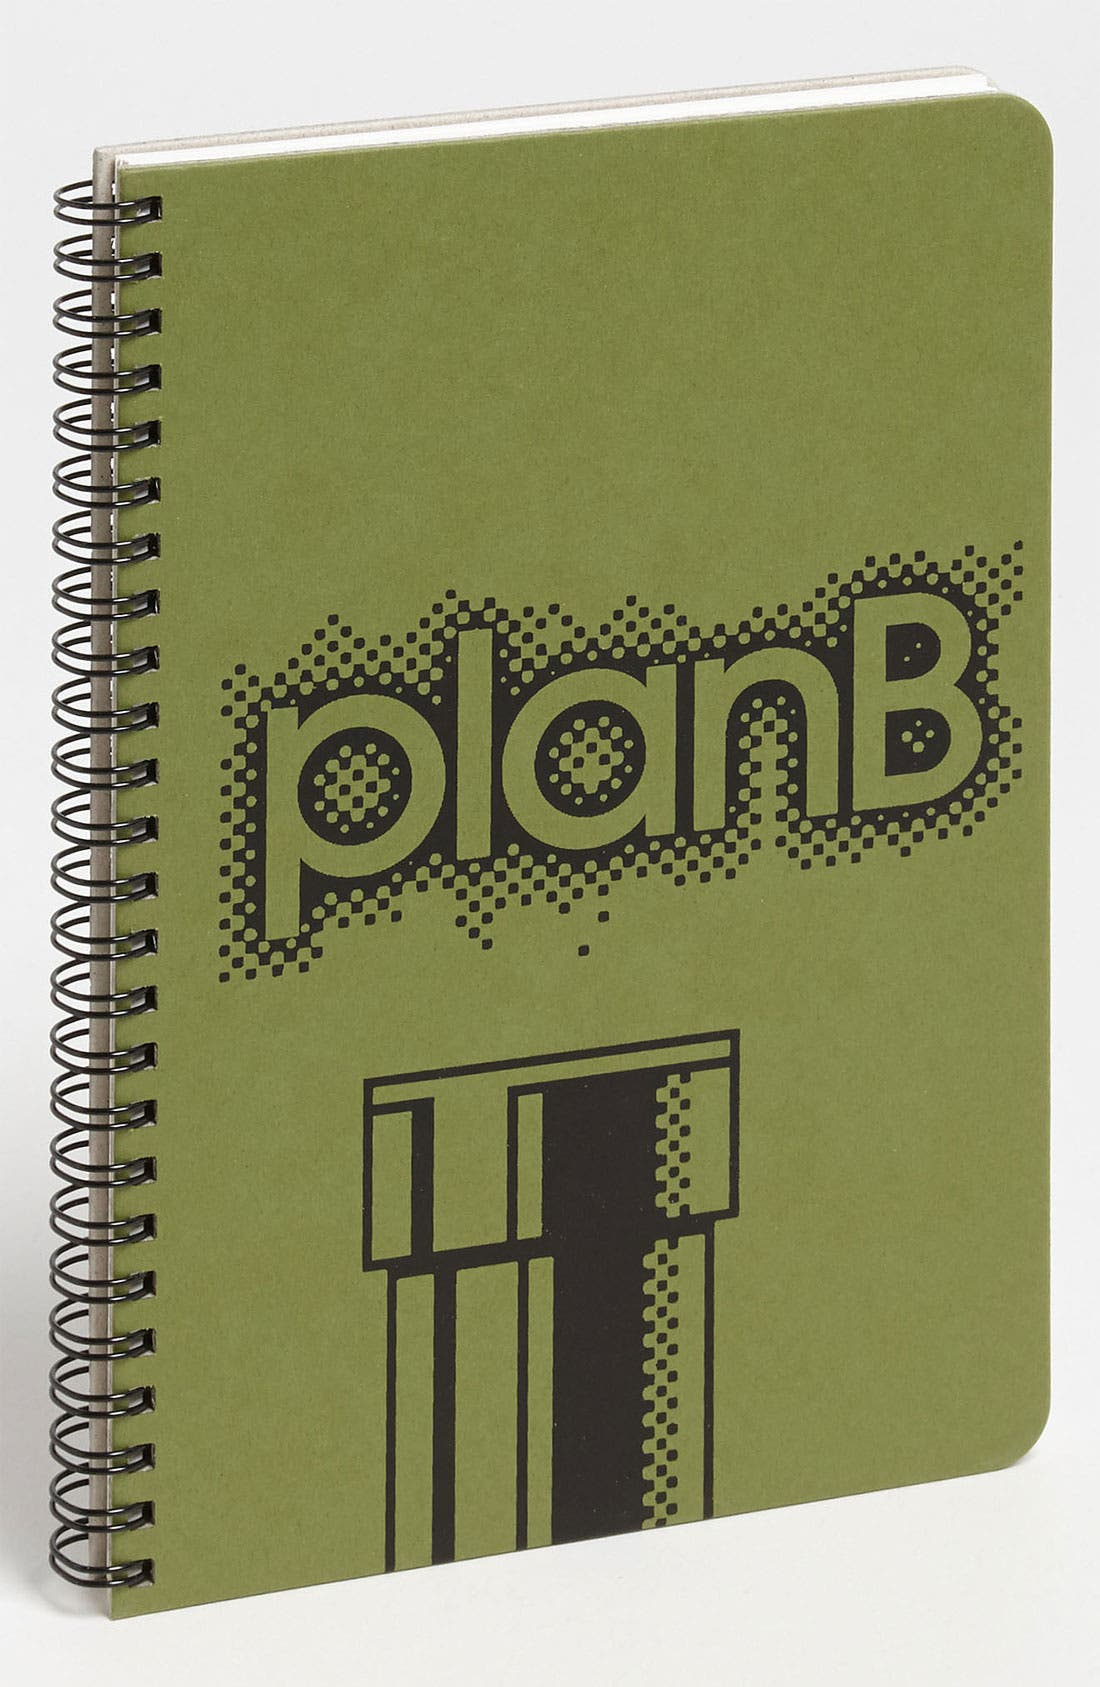 Main Image - Spiral Bound Notebook